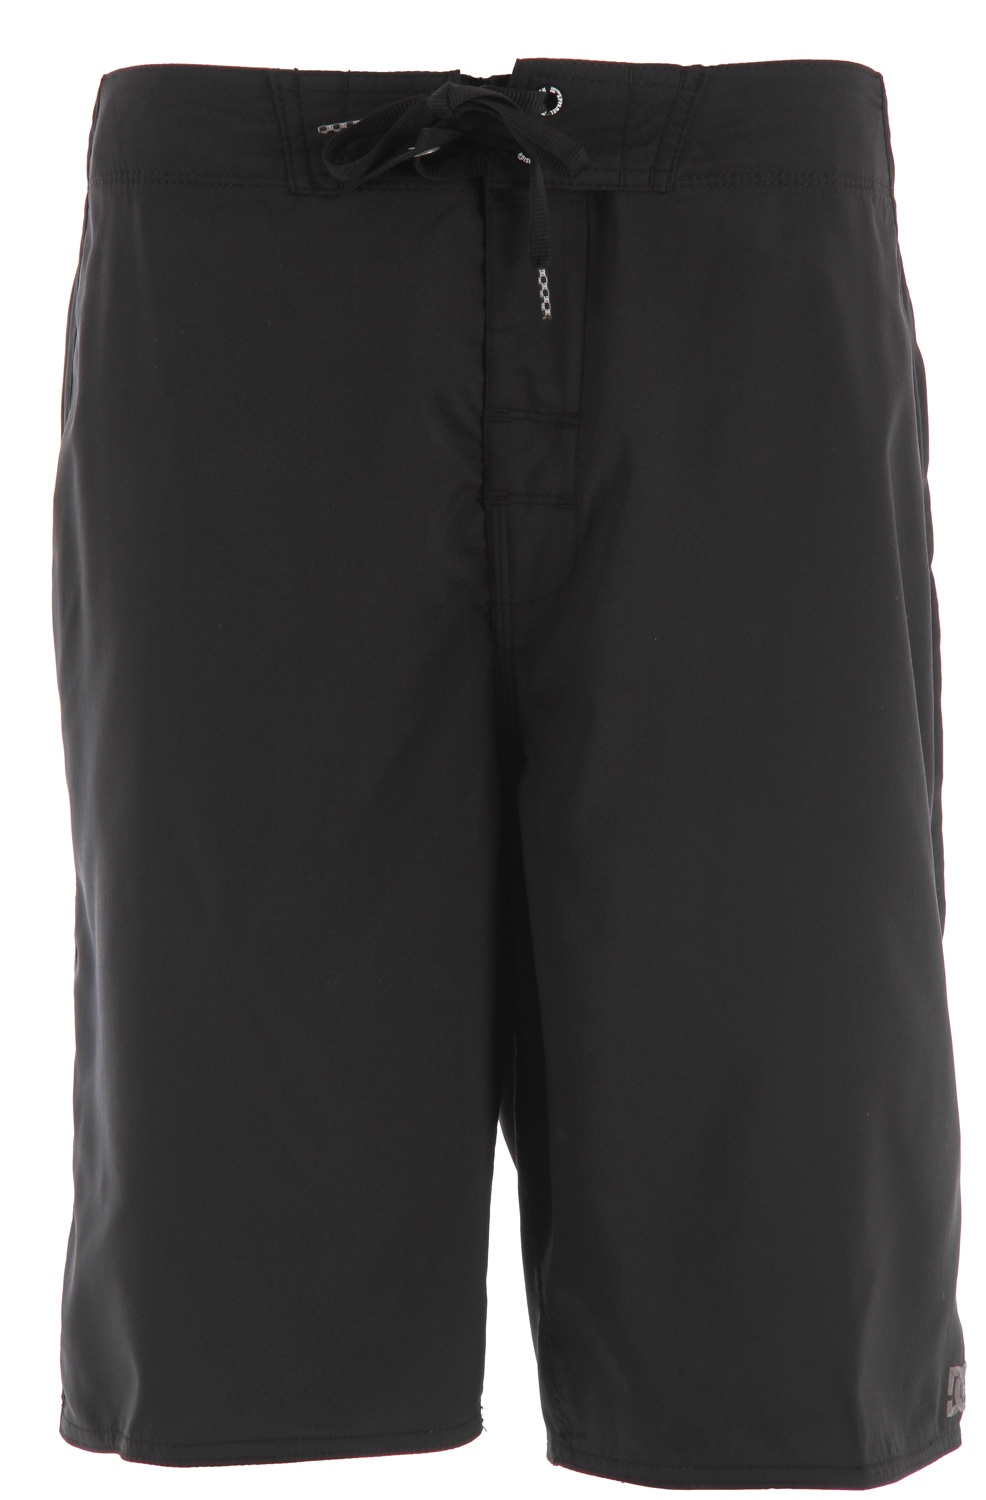 Surf Key Features of the DC Choppy Boardshorts: Hybrid boardshort/walkshort Front stash pockets Zippered rear welt pockets Mesh pocket bags Neo fly 100% polyester deluxe dobby - $30.95